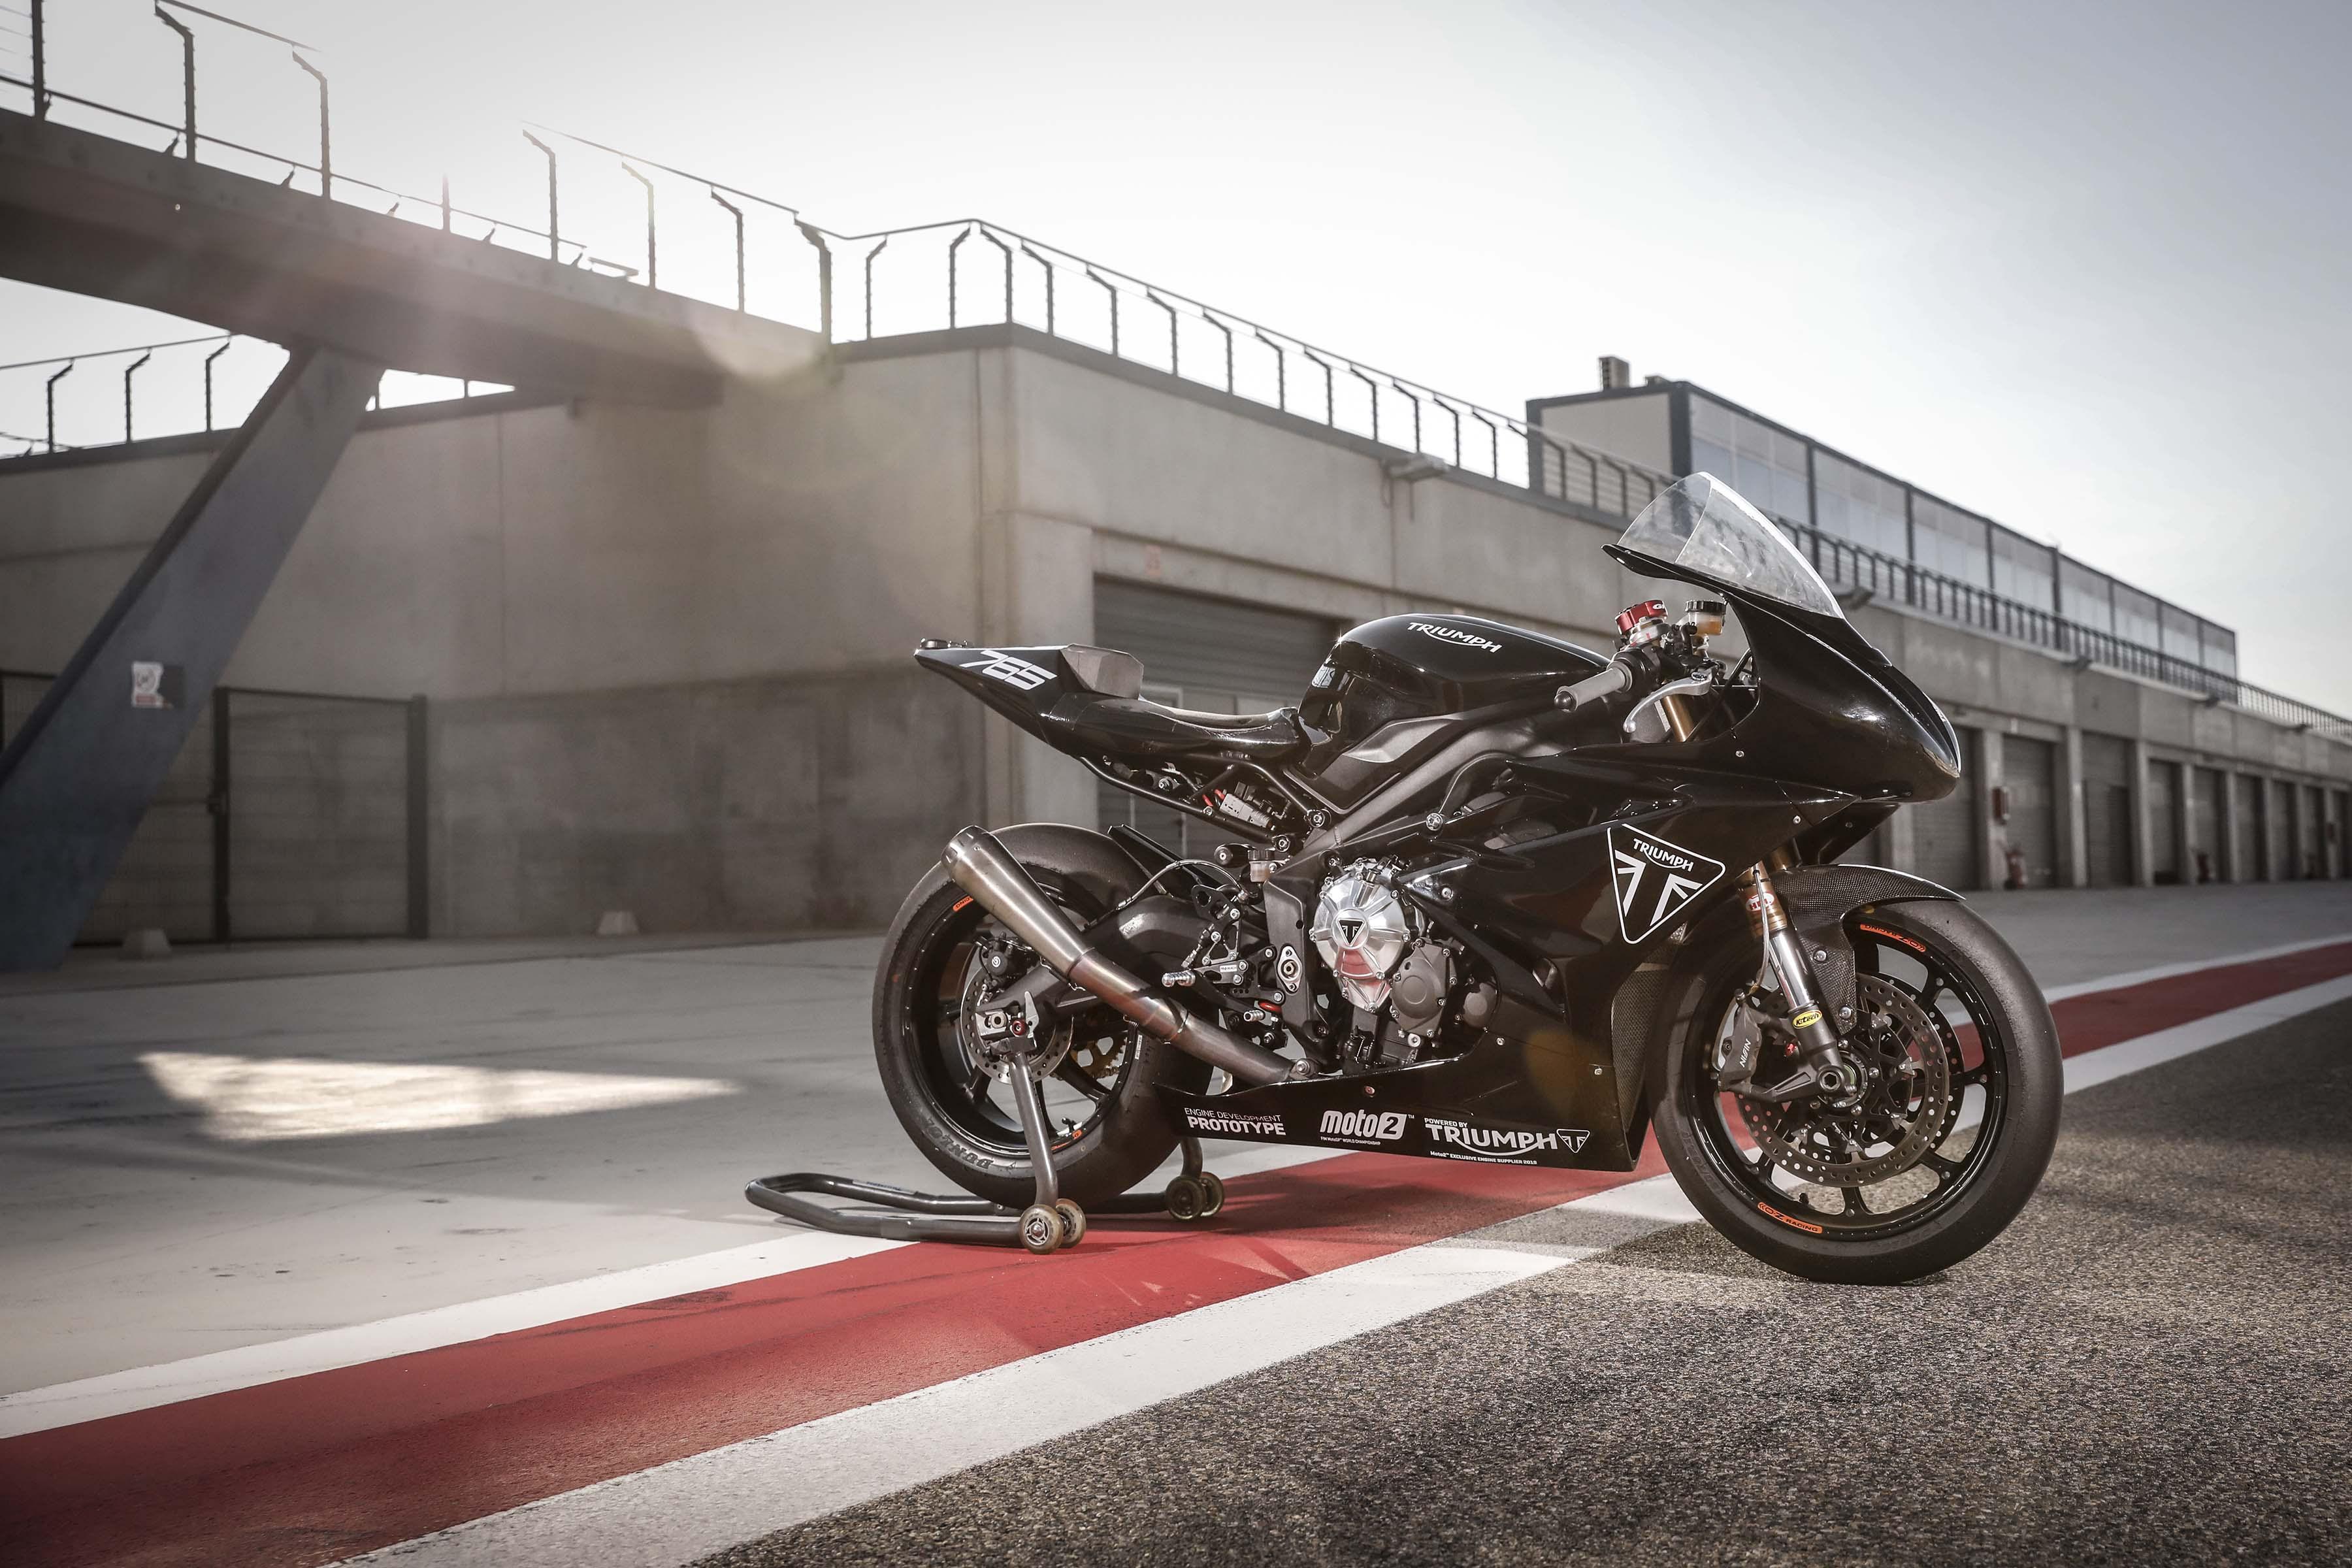 Triumph Daytona 765 Moto2 test bike 10